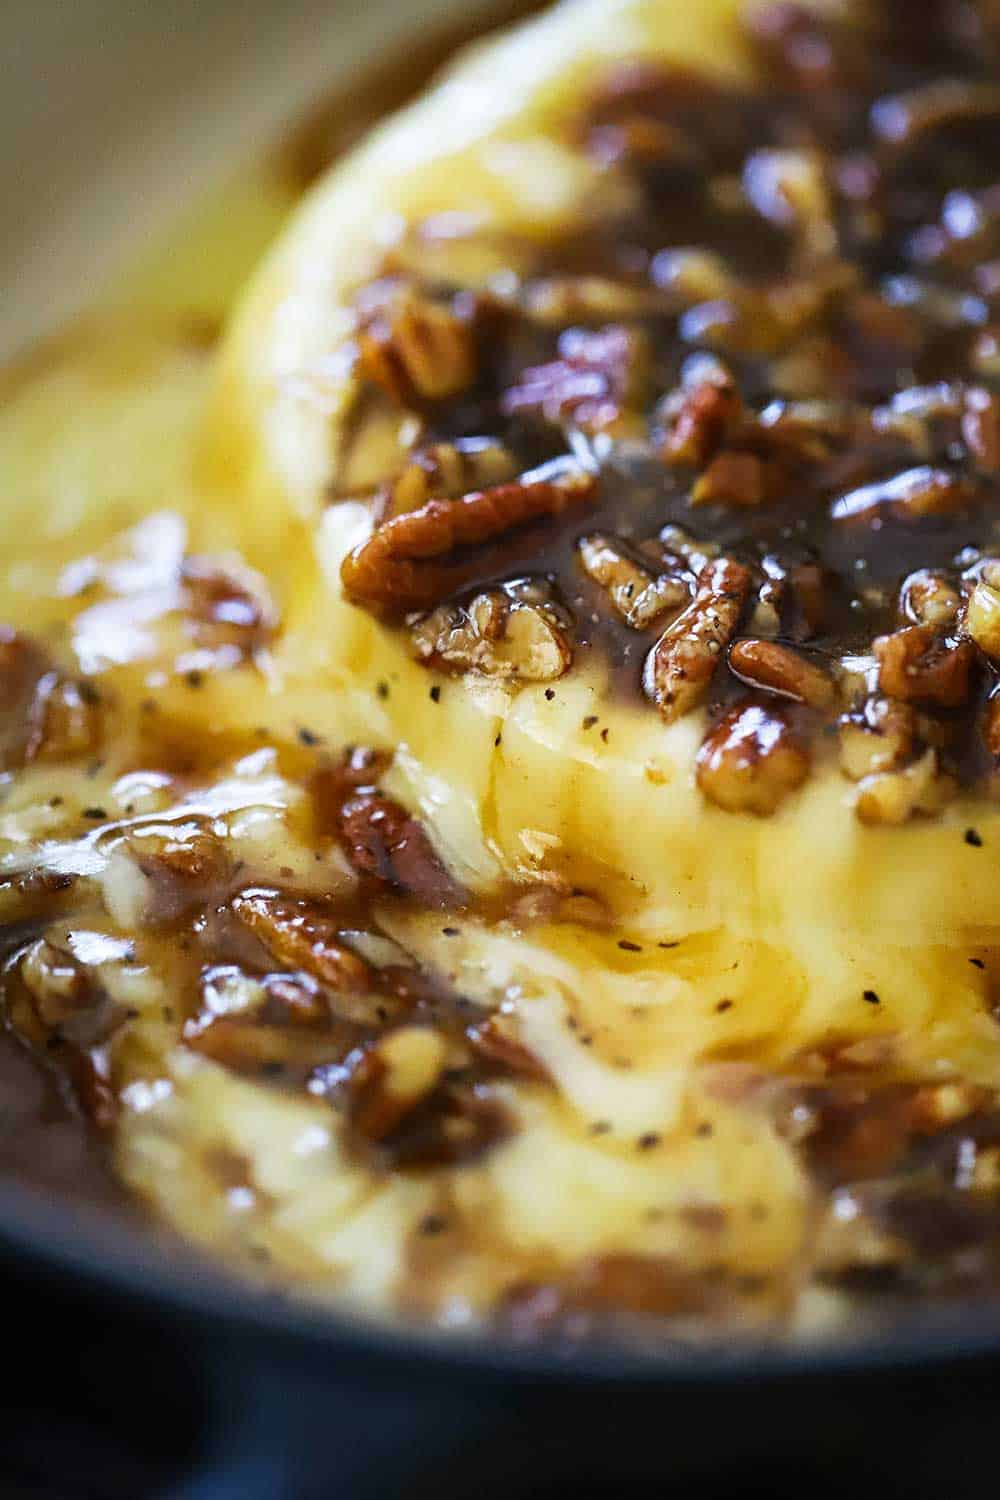 Baked brie with praline sauce in an oval baking dish.